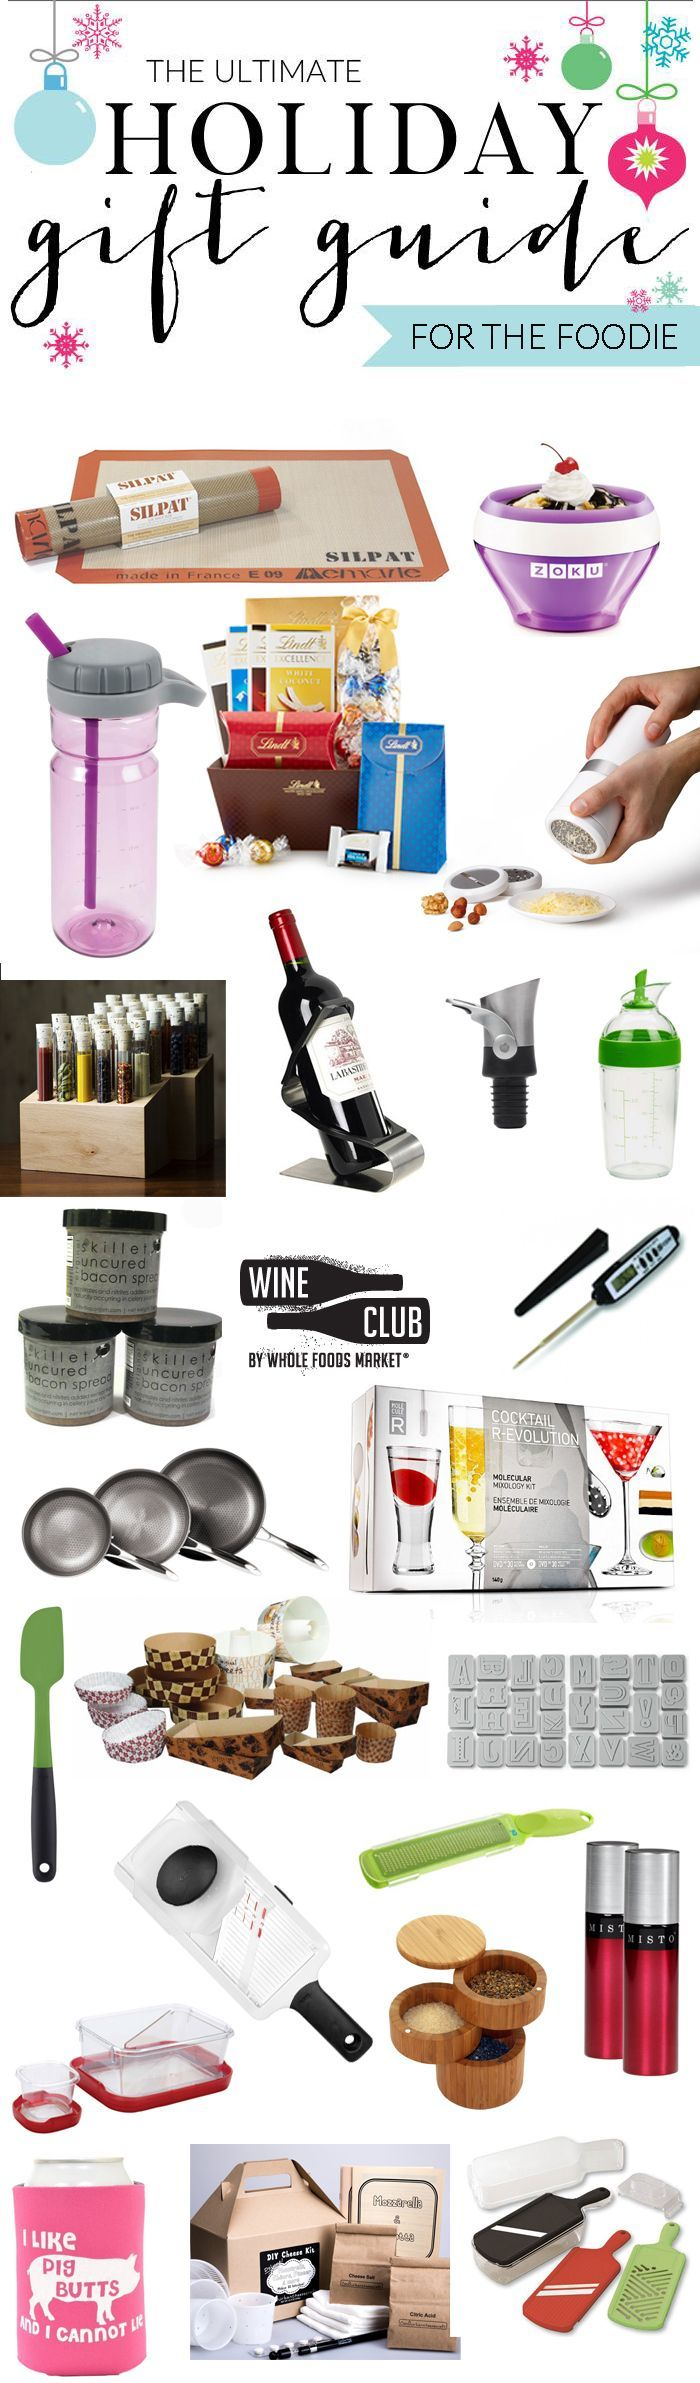 2014 Ultimate Holiday Gift Guide - 25 Gifts for Foodies